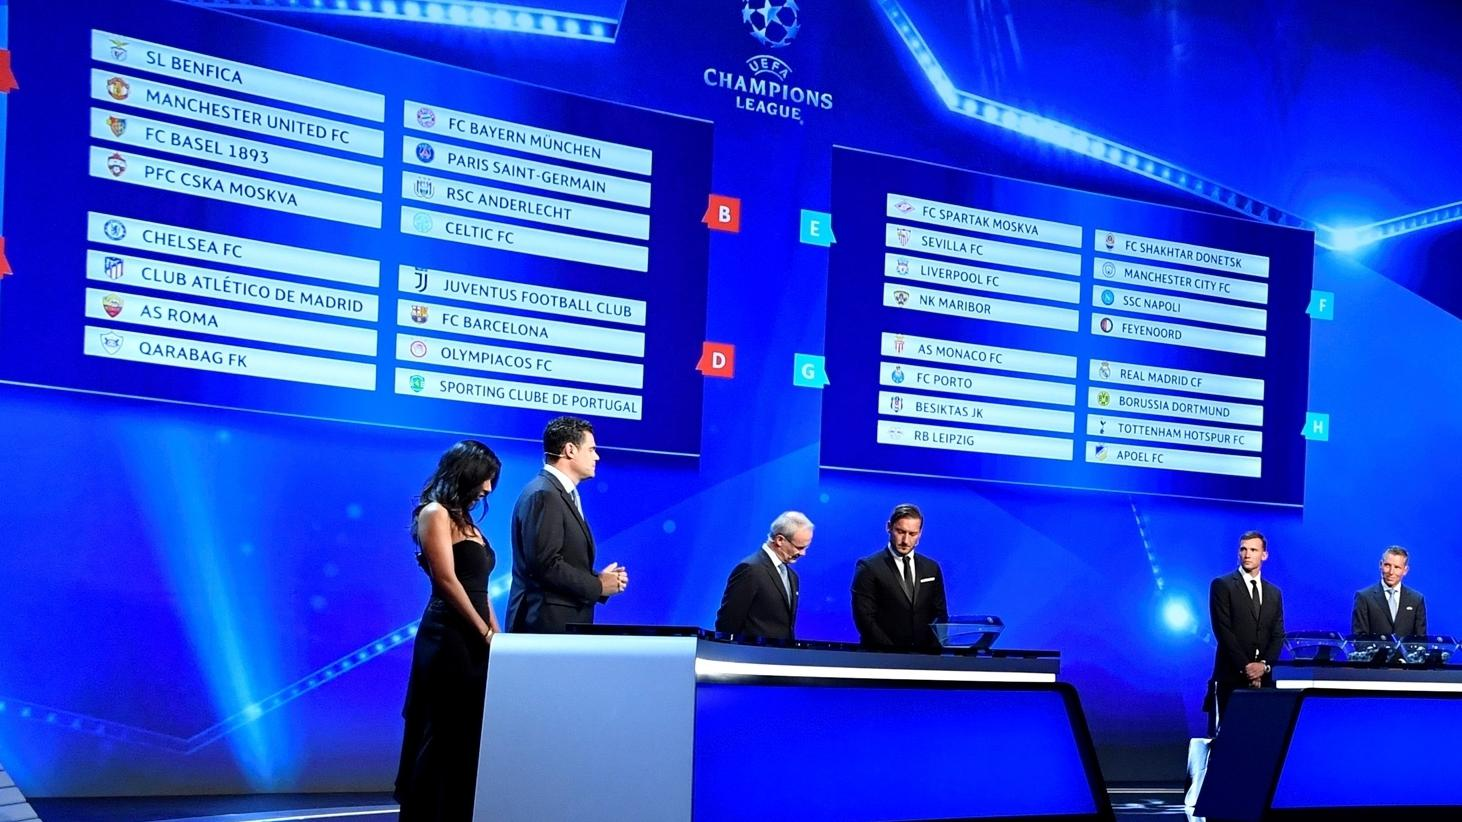 uefa champions league group stage draw uefa champions league uefa com uefa champions league group stage draw